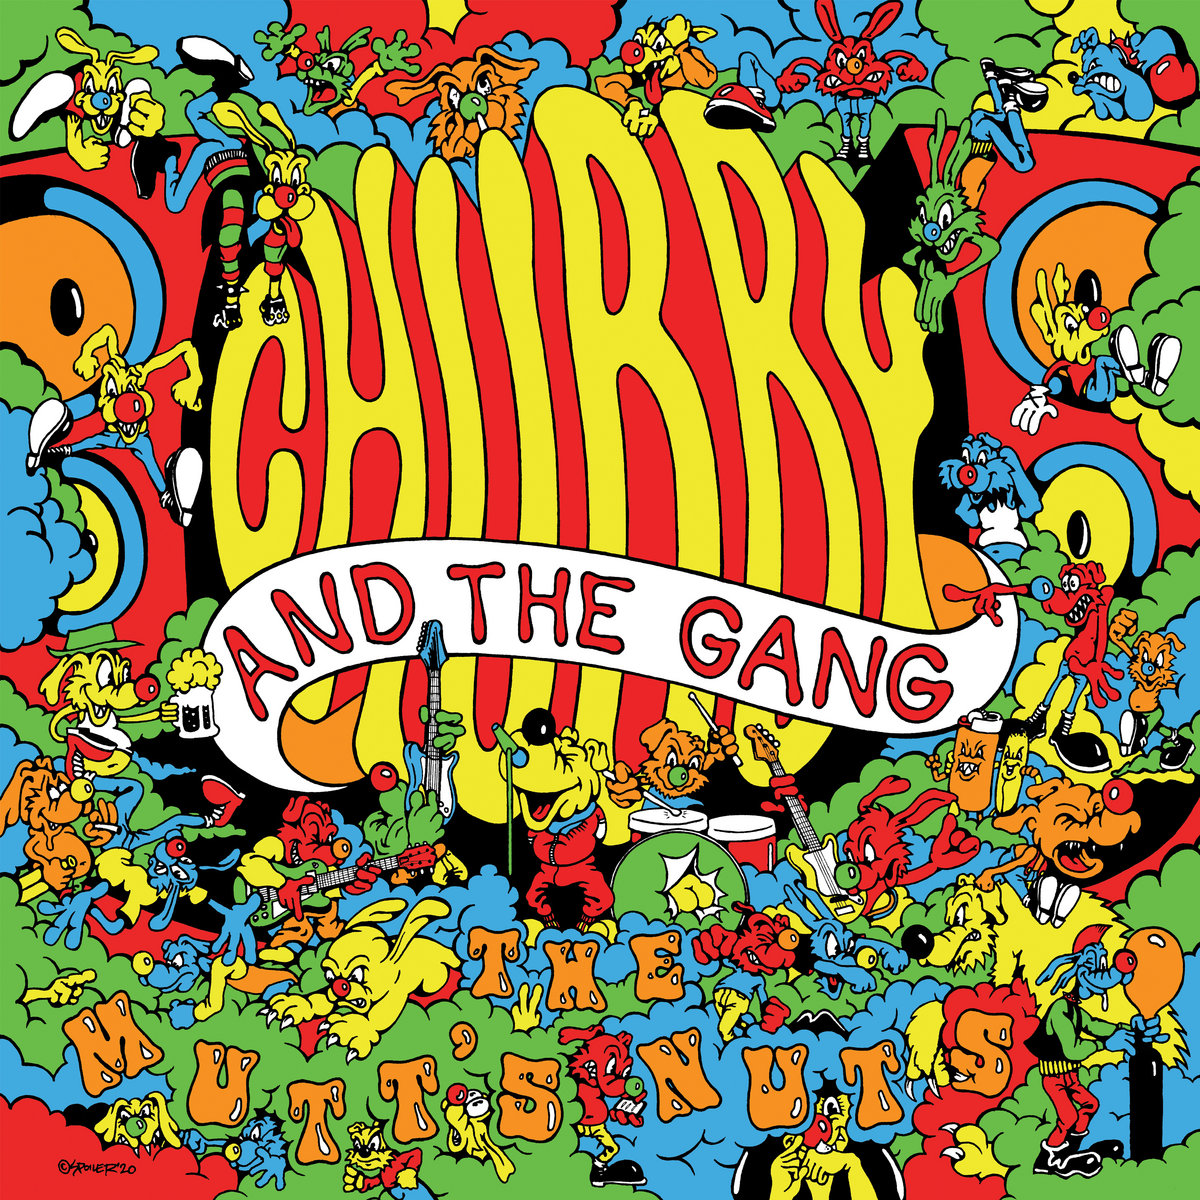 Chubby And The Gang_The Mutt's Nuts